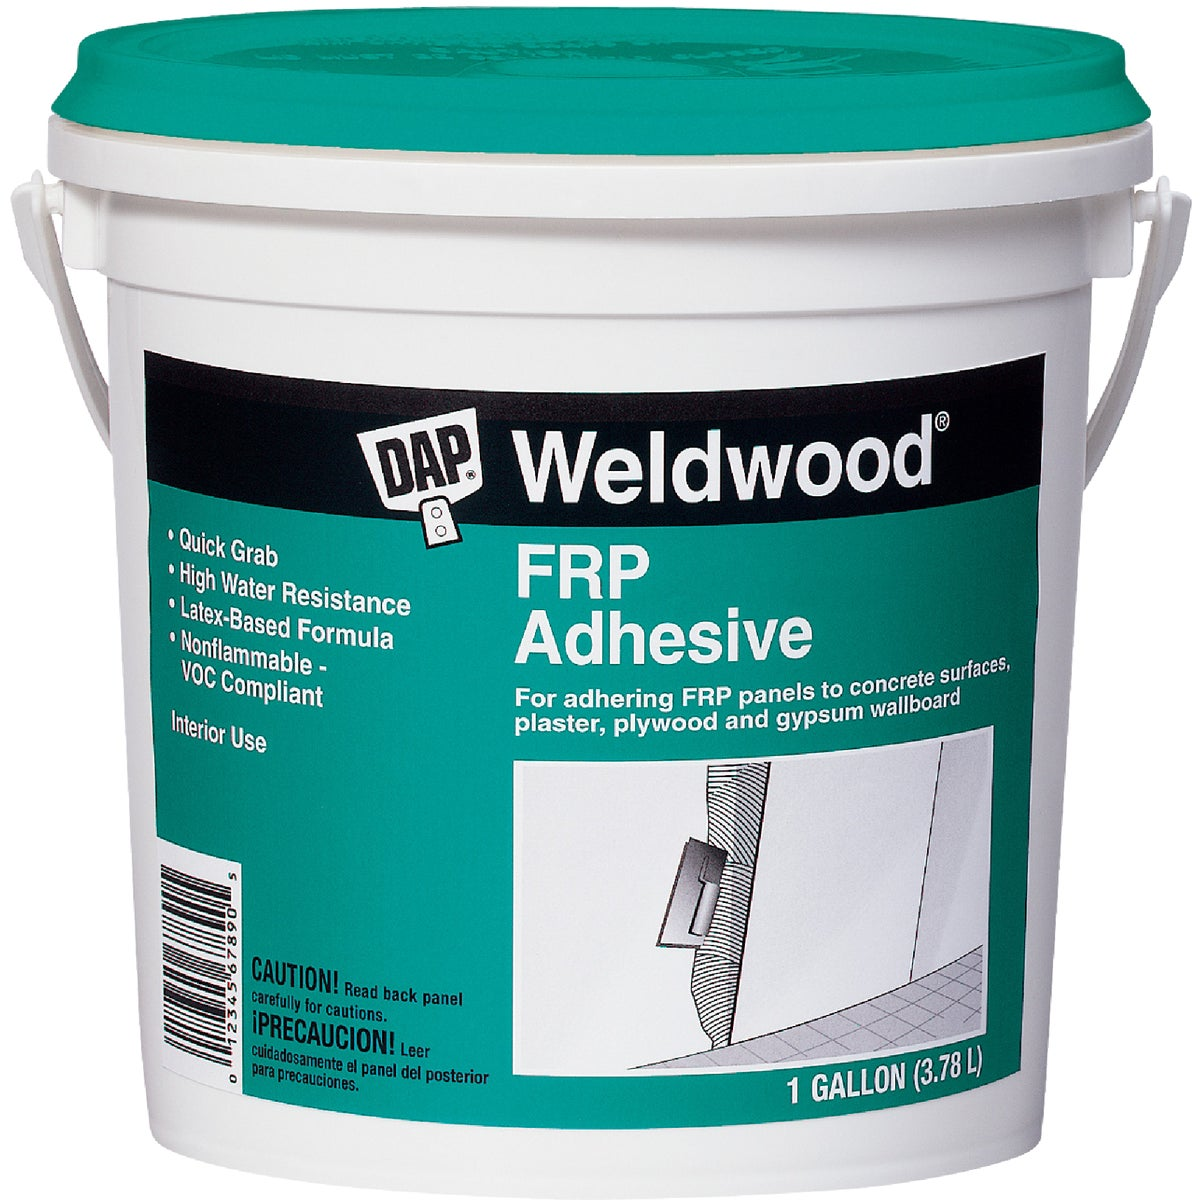 GAL FRP PANEL ADHESIVE - 60480 by Dap Inc